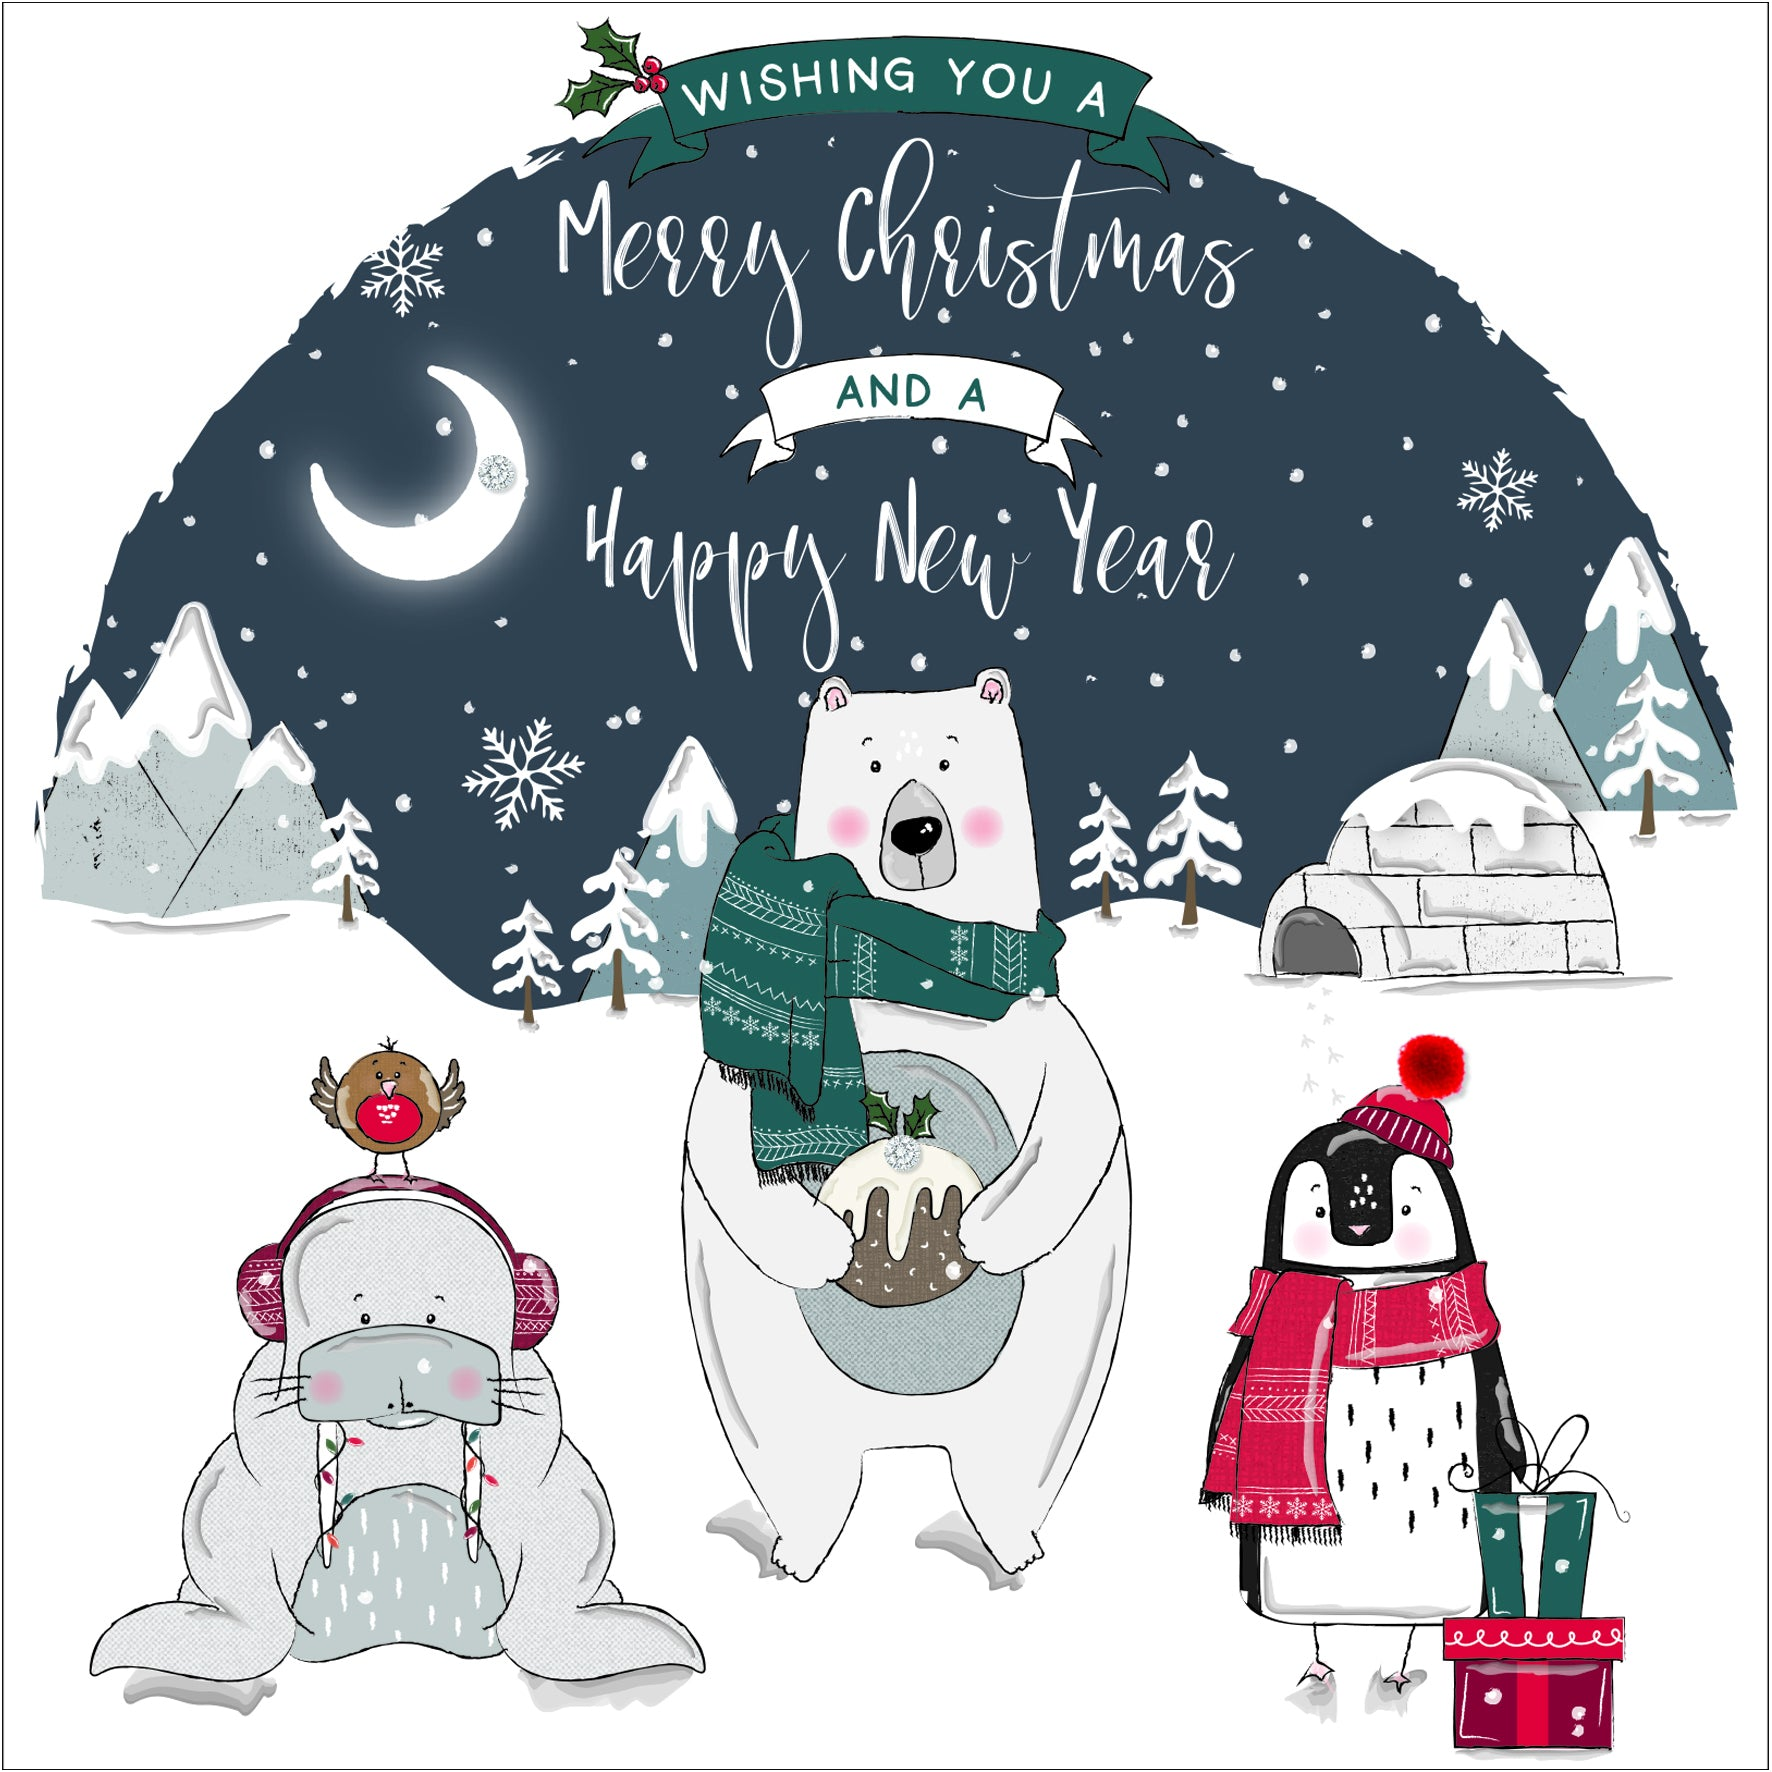 The Handcrafted Card Company Wishing you a Merry Christmas Card